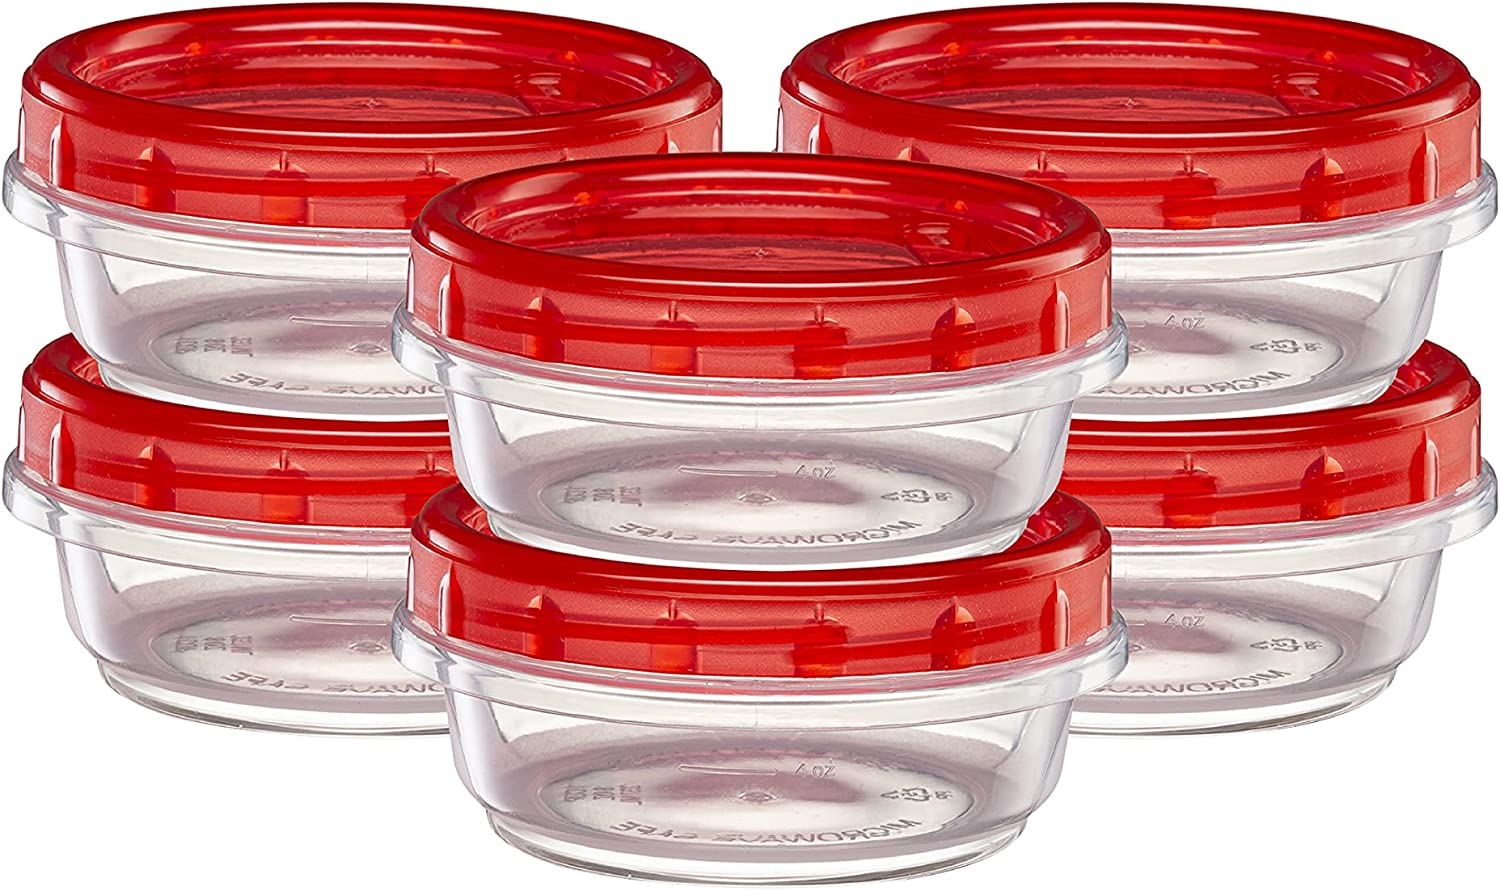 (8 Ounce 10 Pack) Twist cap Deli Containers Clear Bottom With Red Top Screw on Lids Twist Top Food Storage Freezer Containers